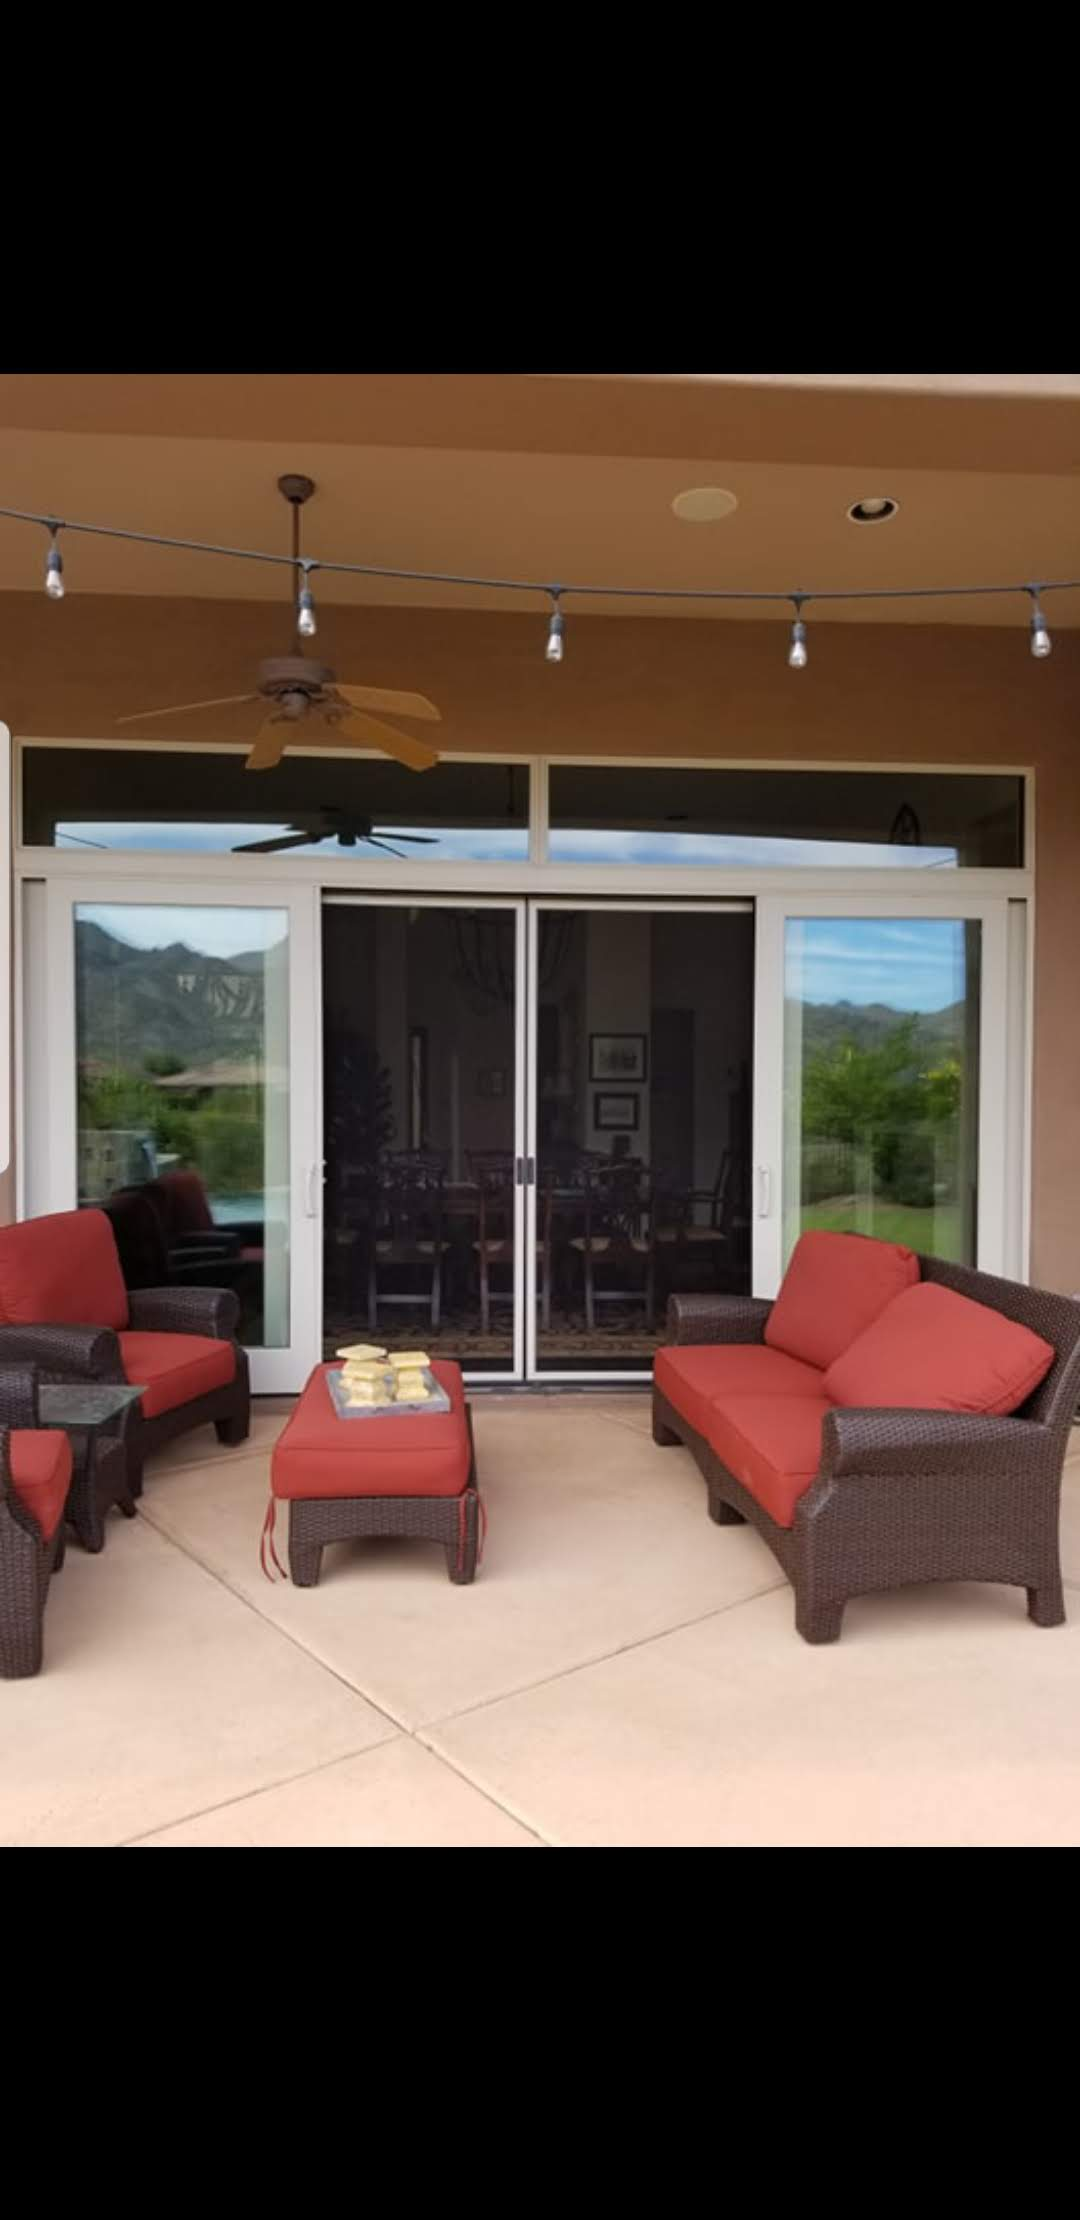 Arizona Window and Door in Scottsdale and Tucson showing sliding patio doors and seating